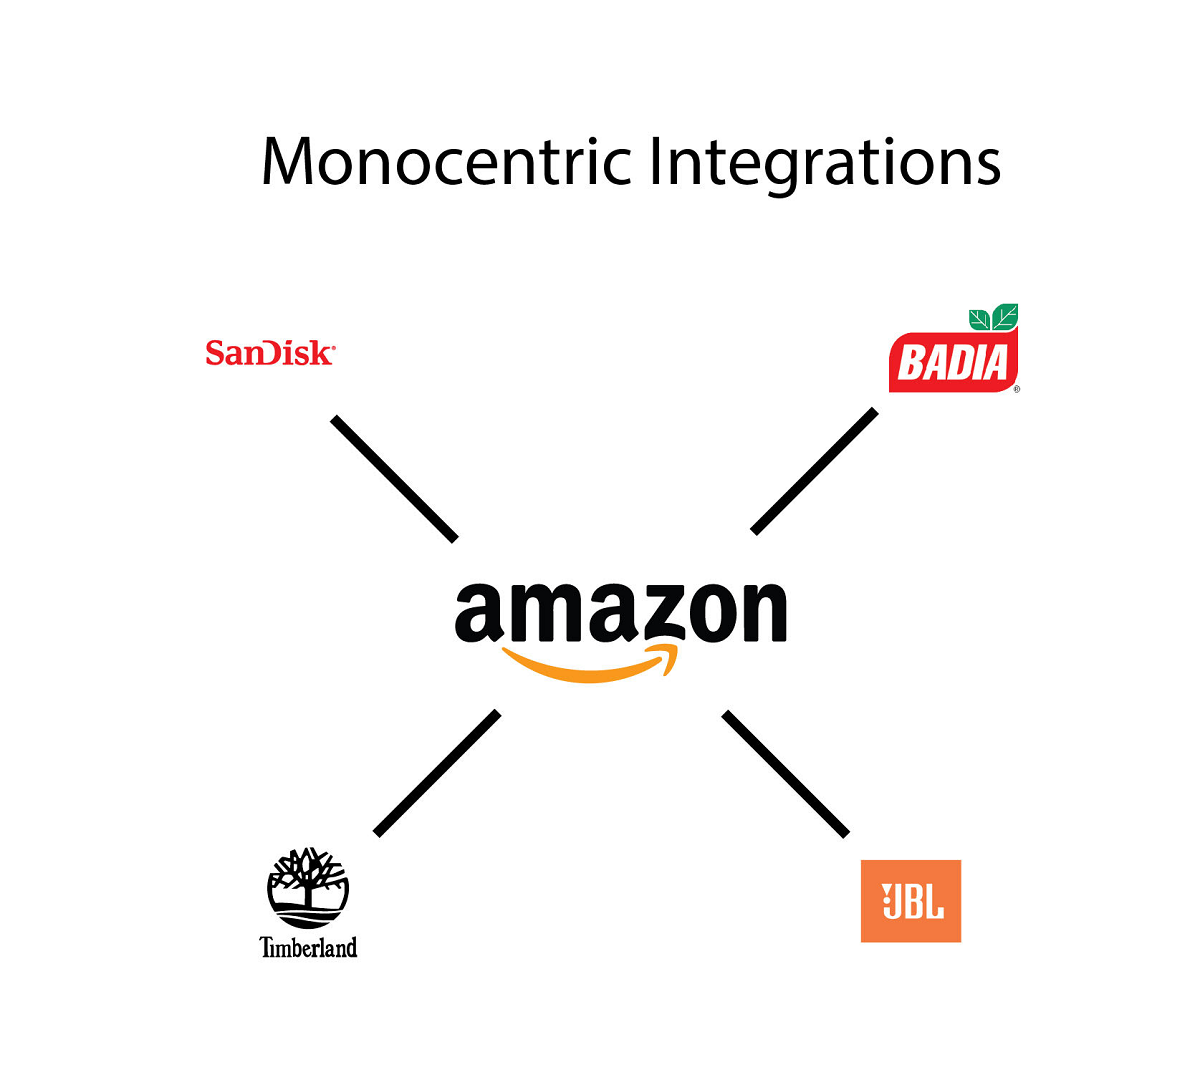 SanDisk, Badia, Timberland, and JBL all connected separately to Amazon